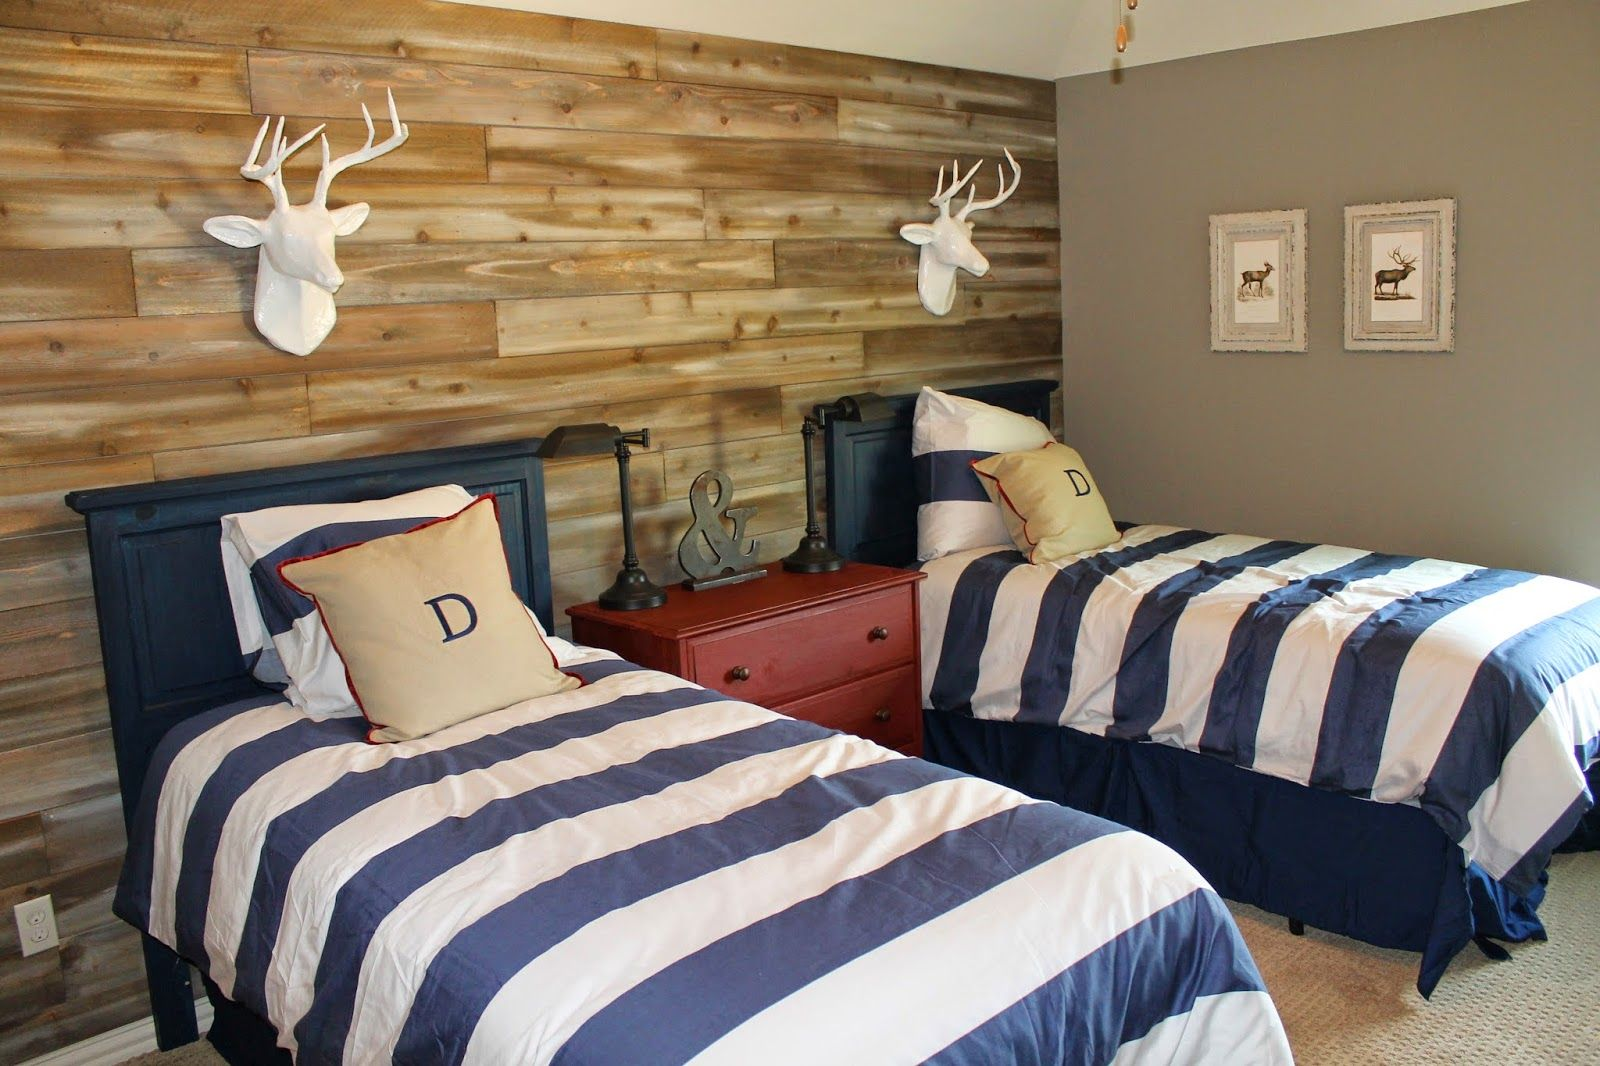 Bedroom decorating ideas feature wall - Wood Feature Walls Woodland Themed Boys Room Shared Space Two Twin Beds